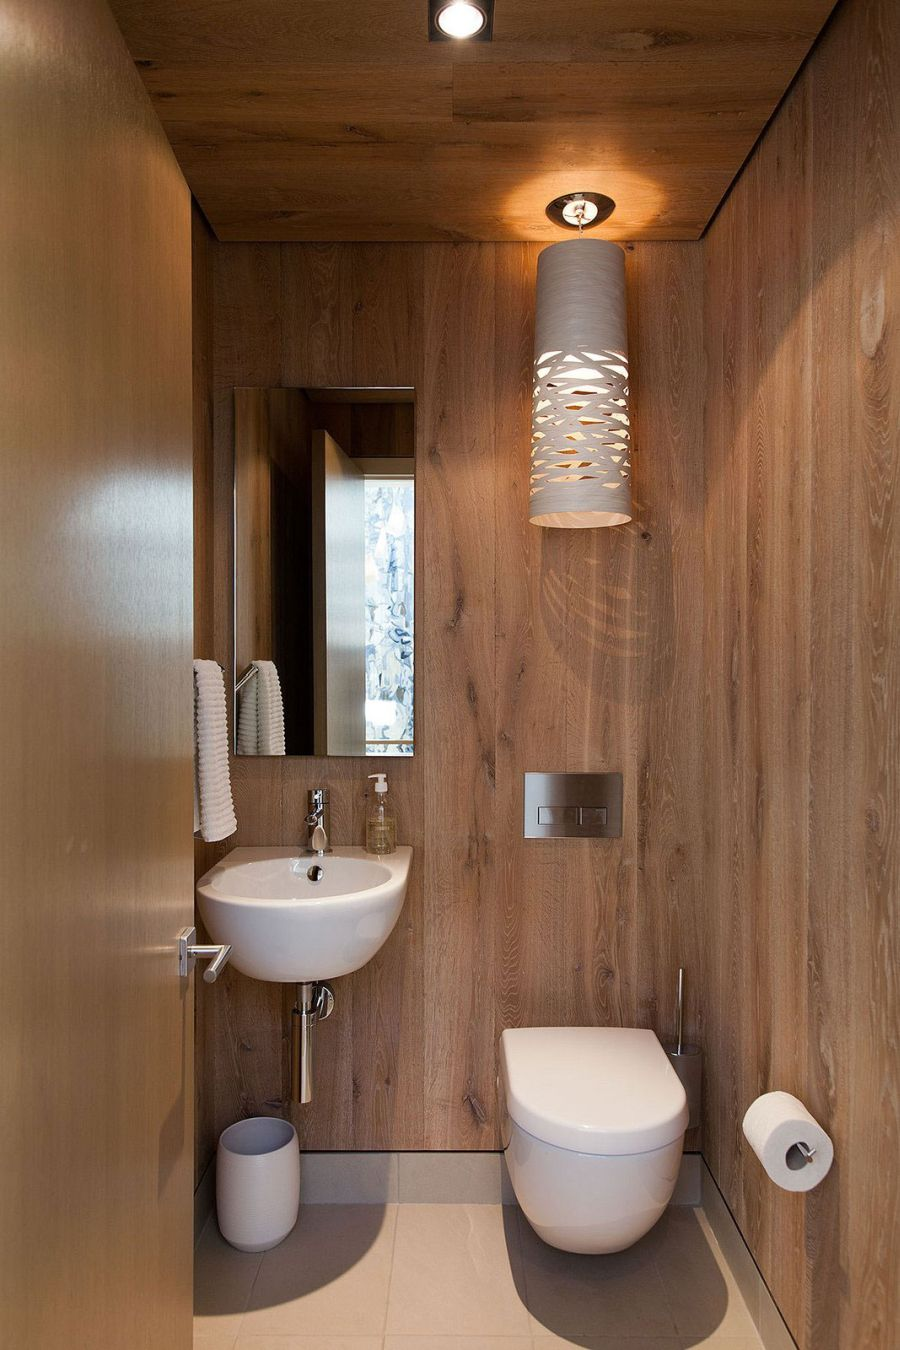 Compact bathroom design idea